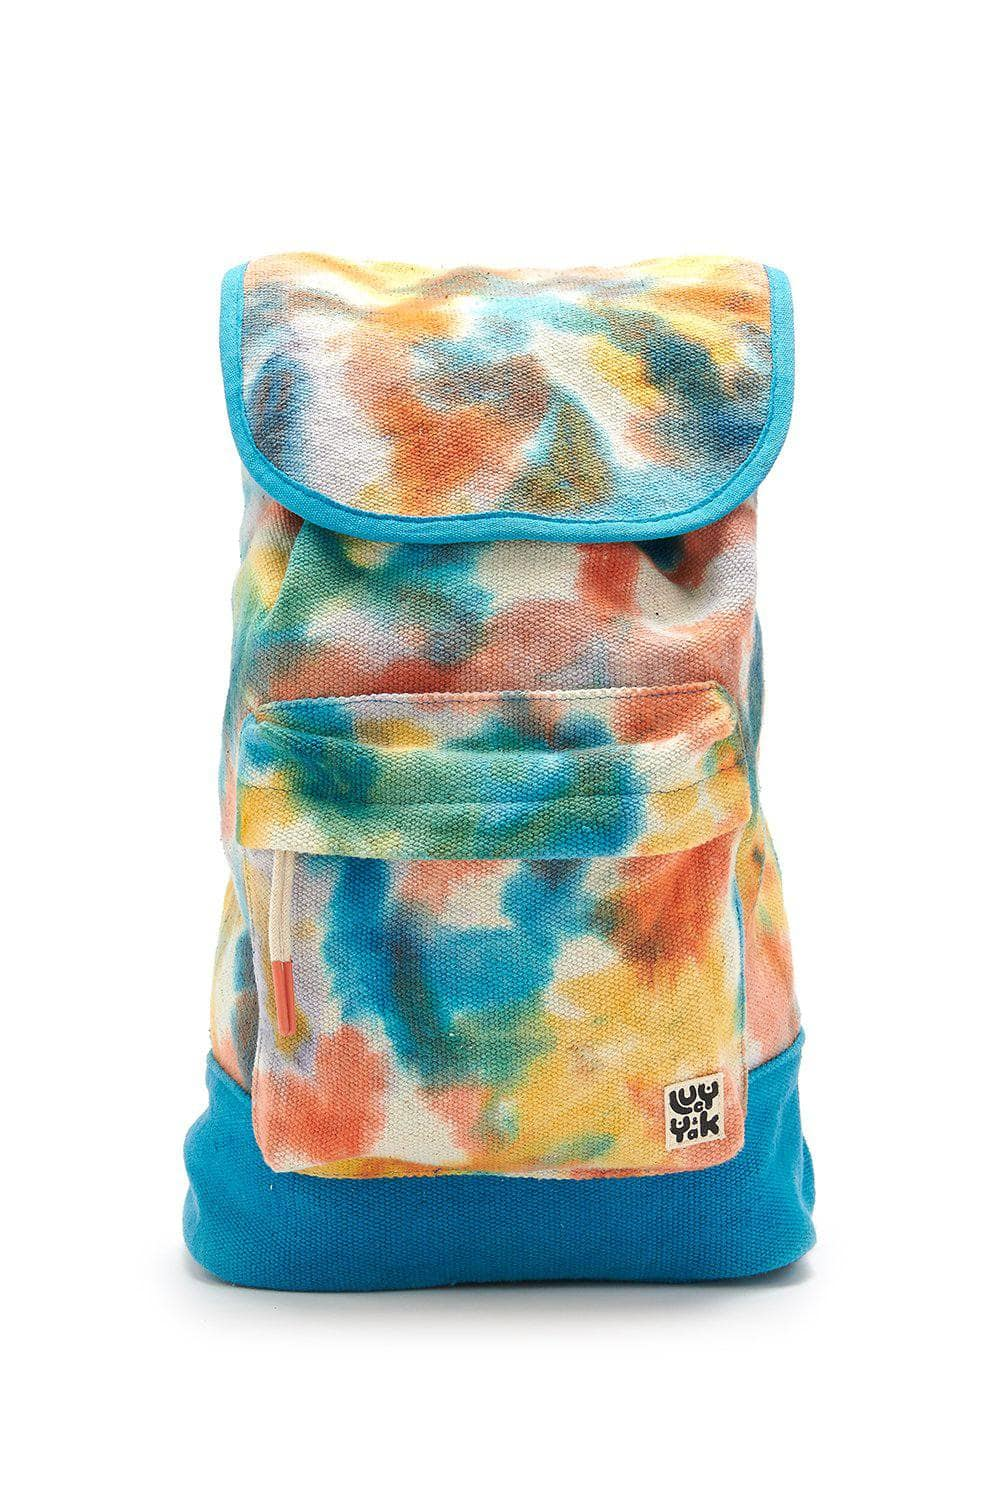 Lucy & Yak Bag The Sundaze Collection - 'Finley' Backpack in Multicoloured Tie Dye